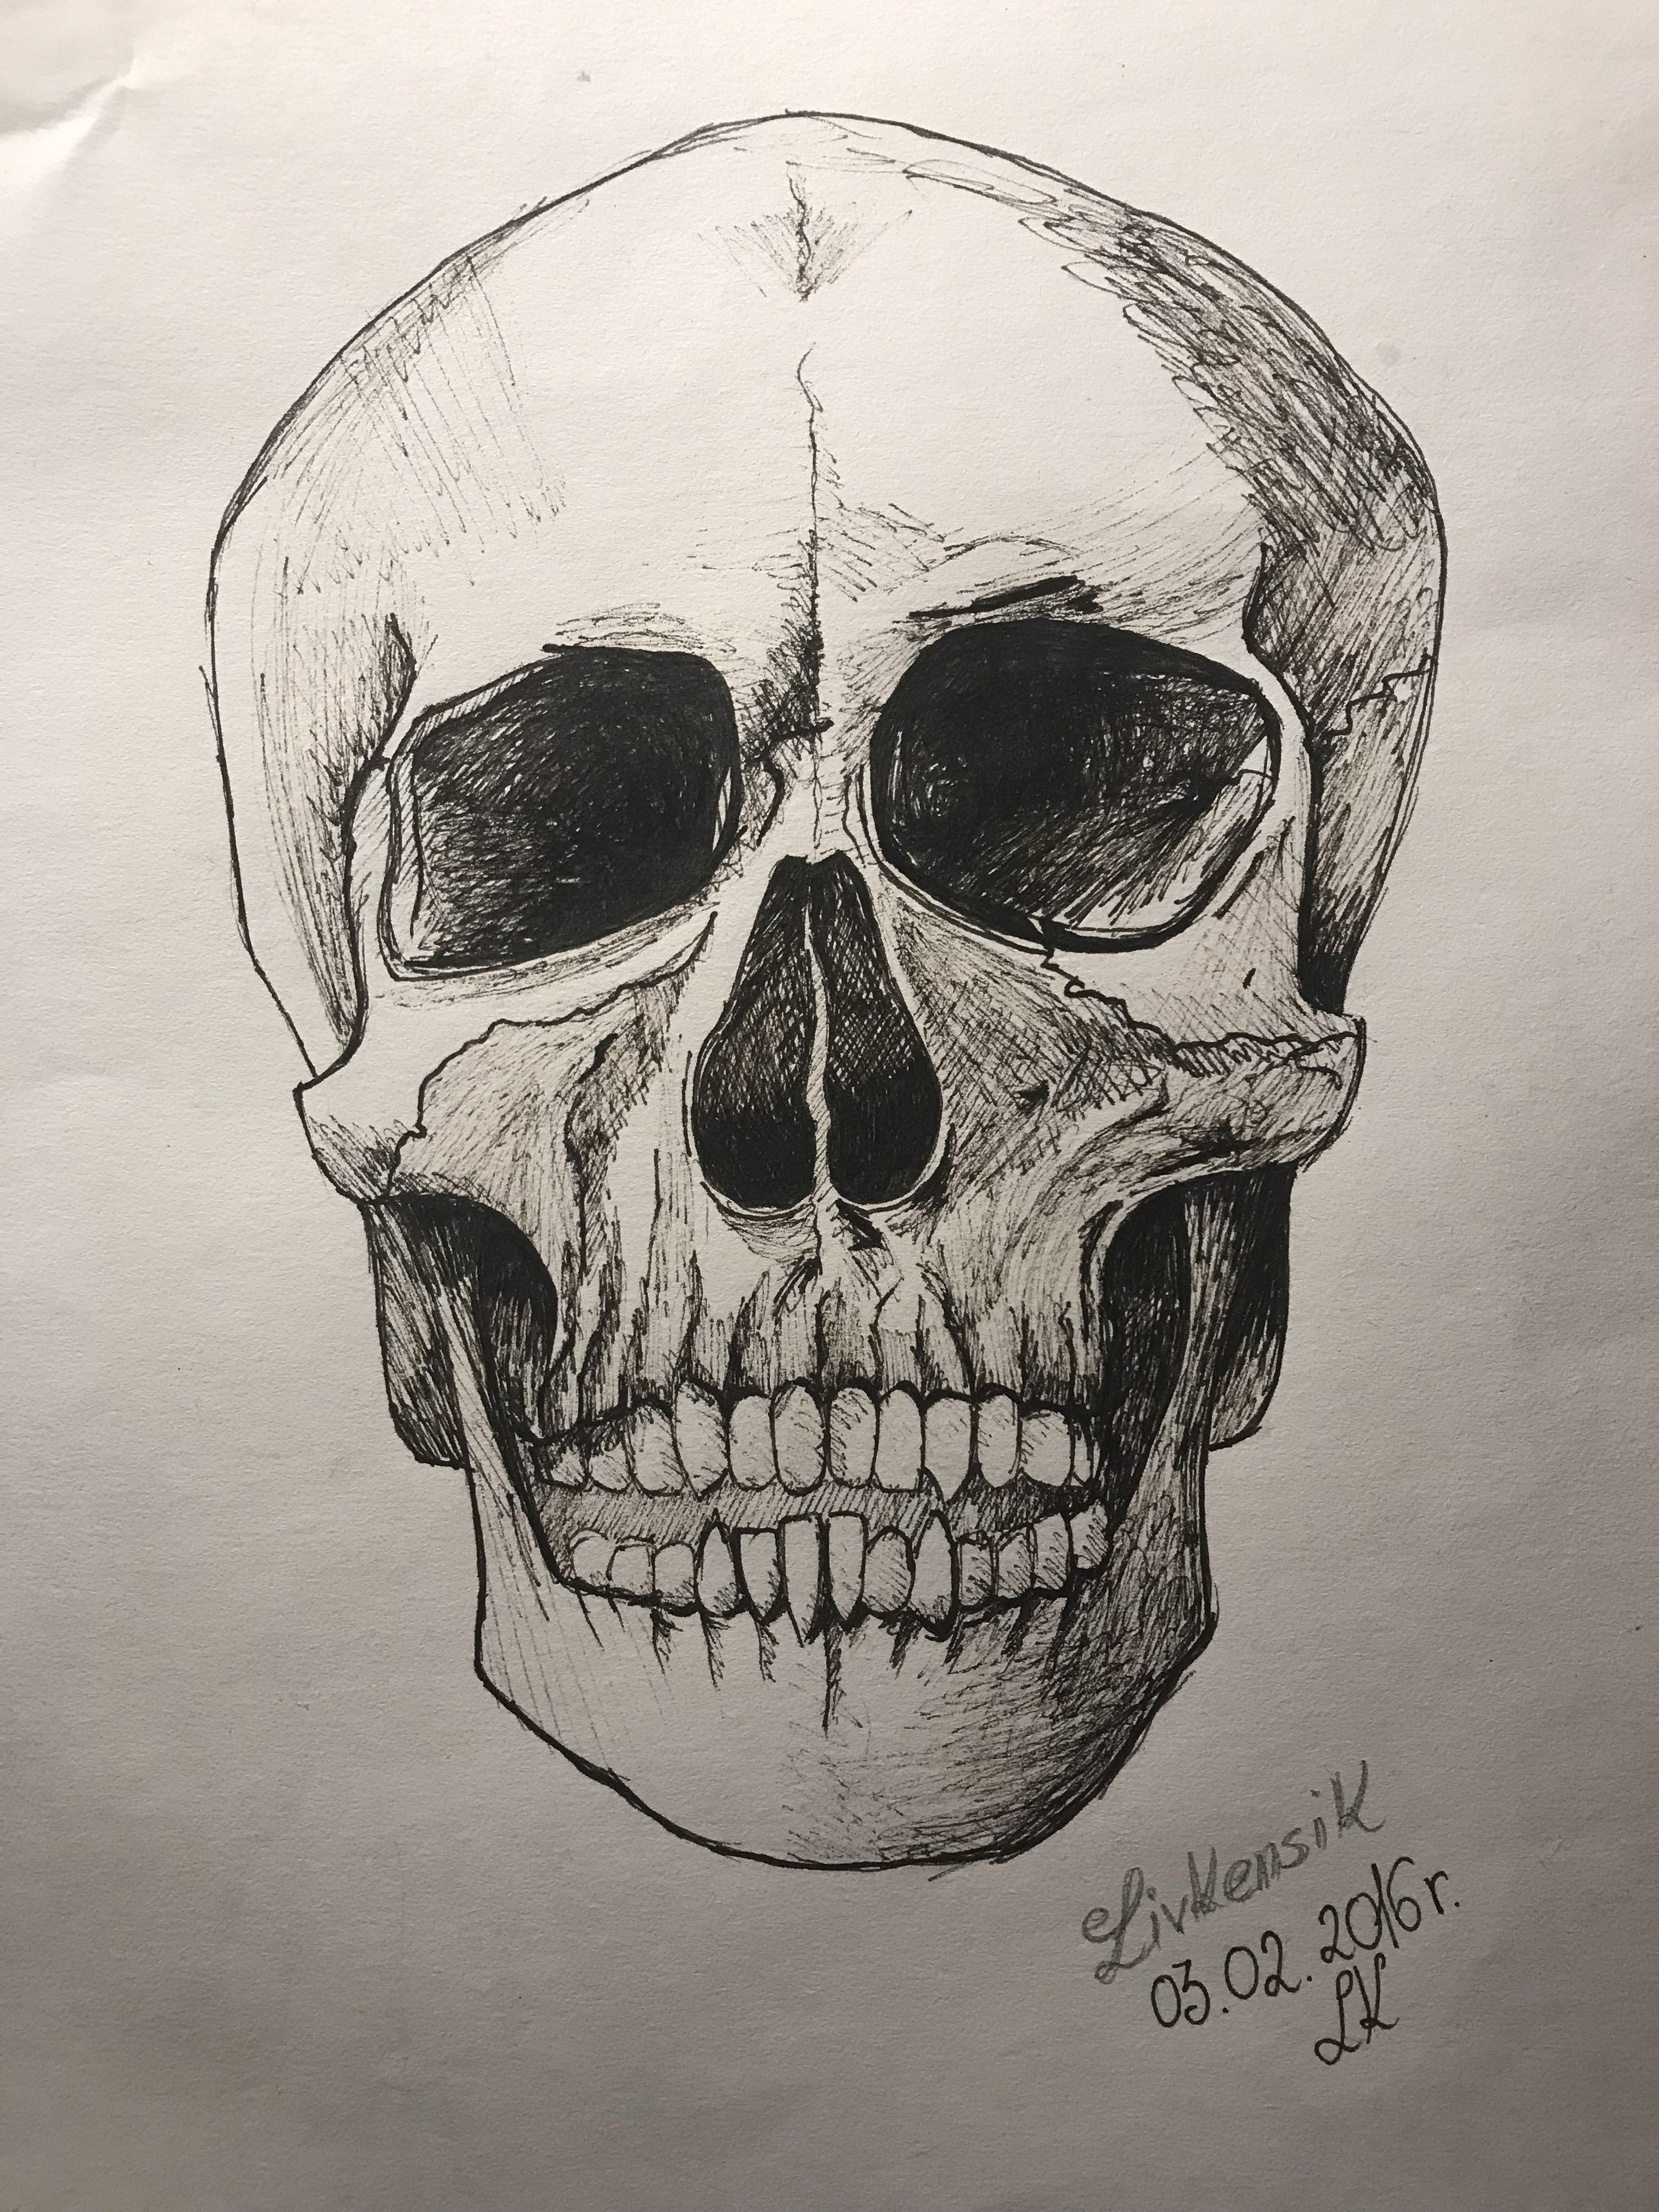 If you want good draw you must know anatomy! I love skulls ...